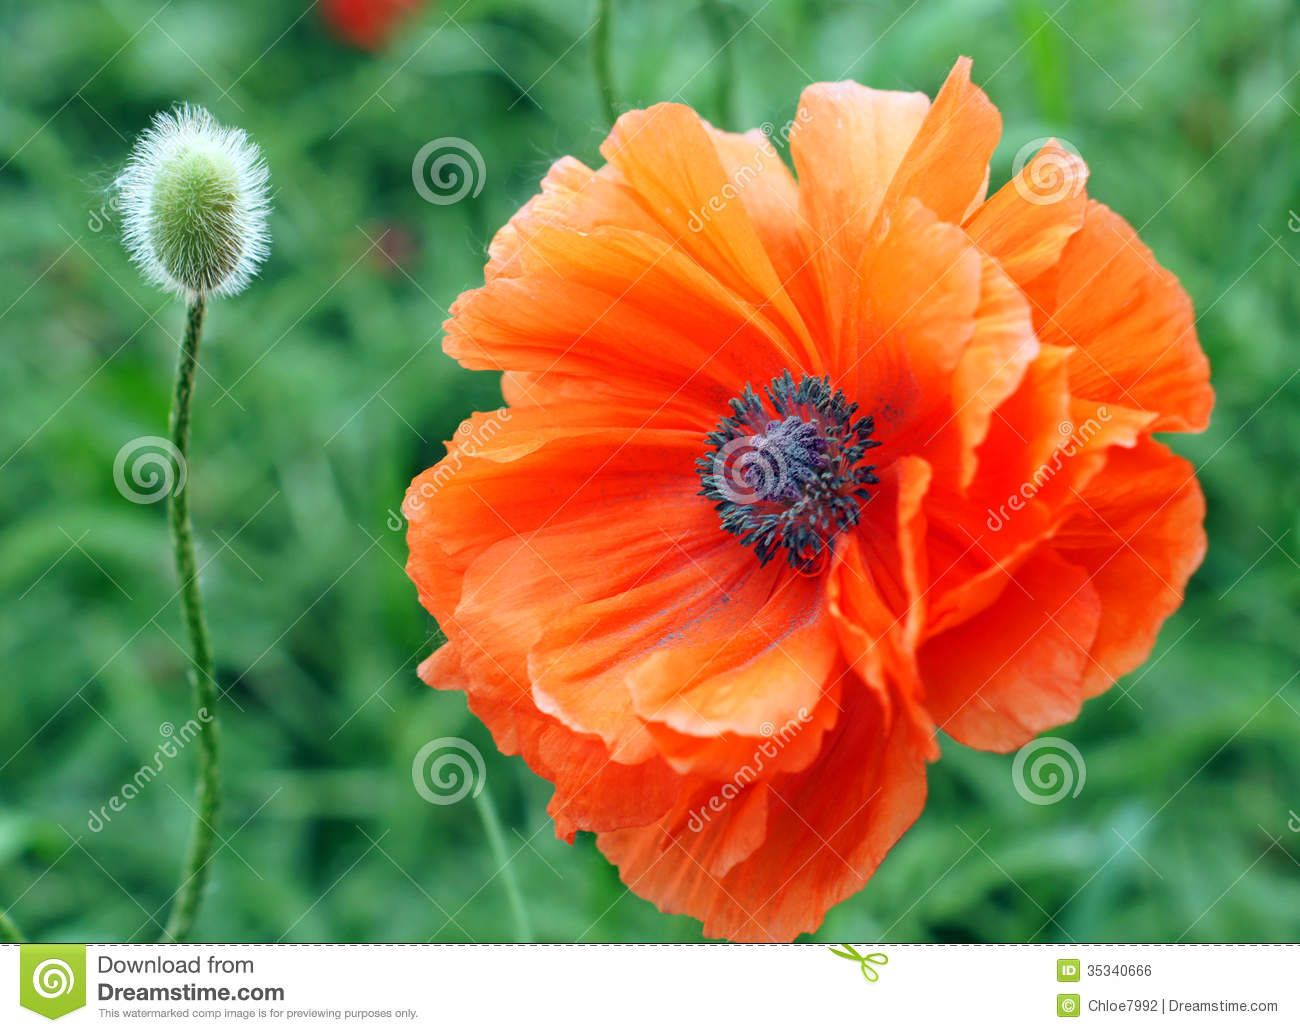 Poppy orange google search tattoo final inspiration pics for explore flower photos tattoos and more poppy orange mightylinksfo Image collections